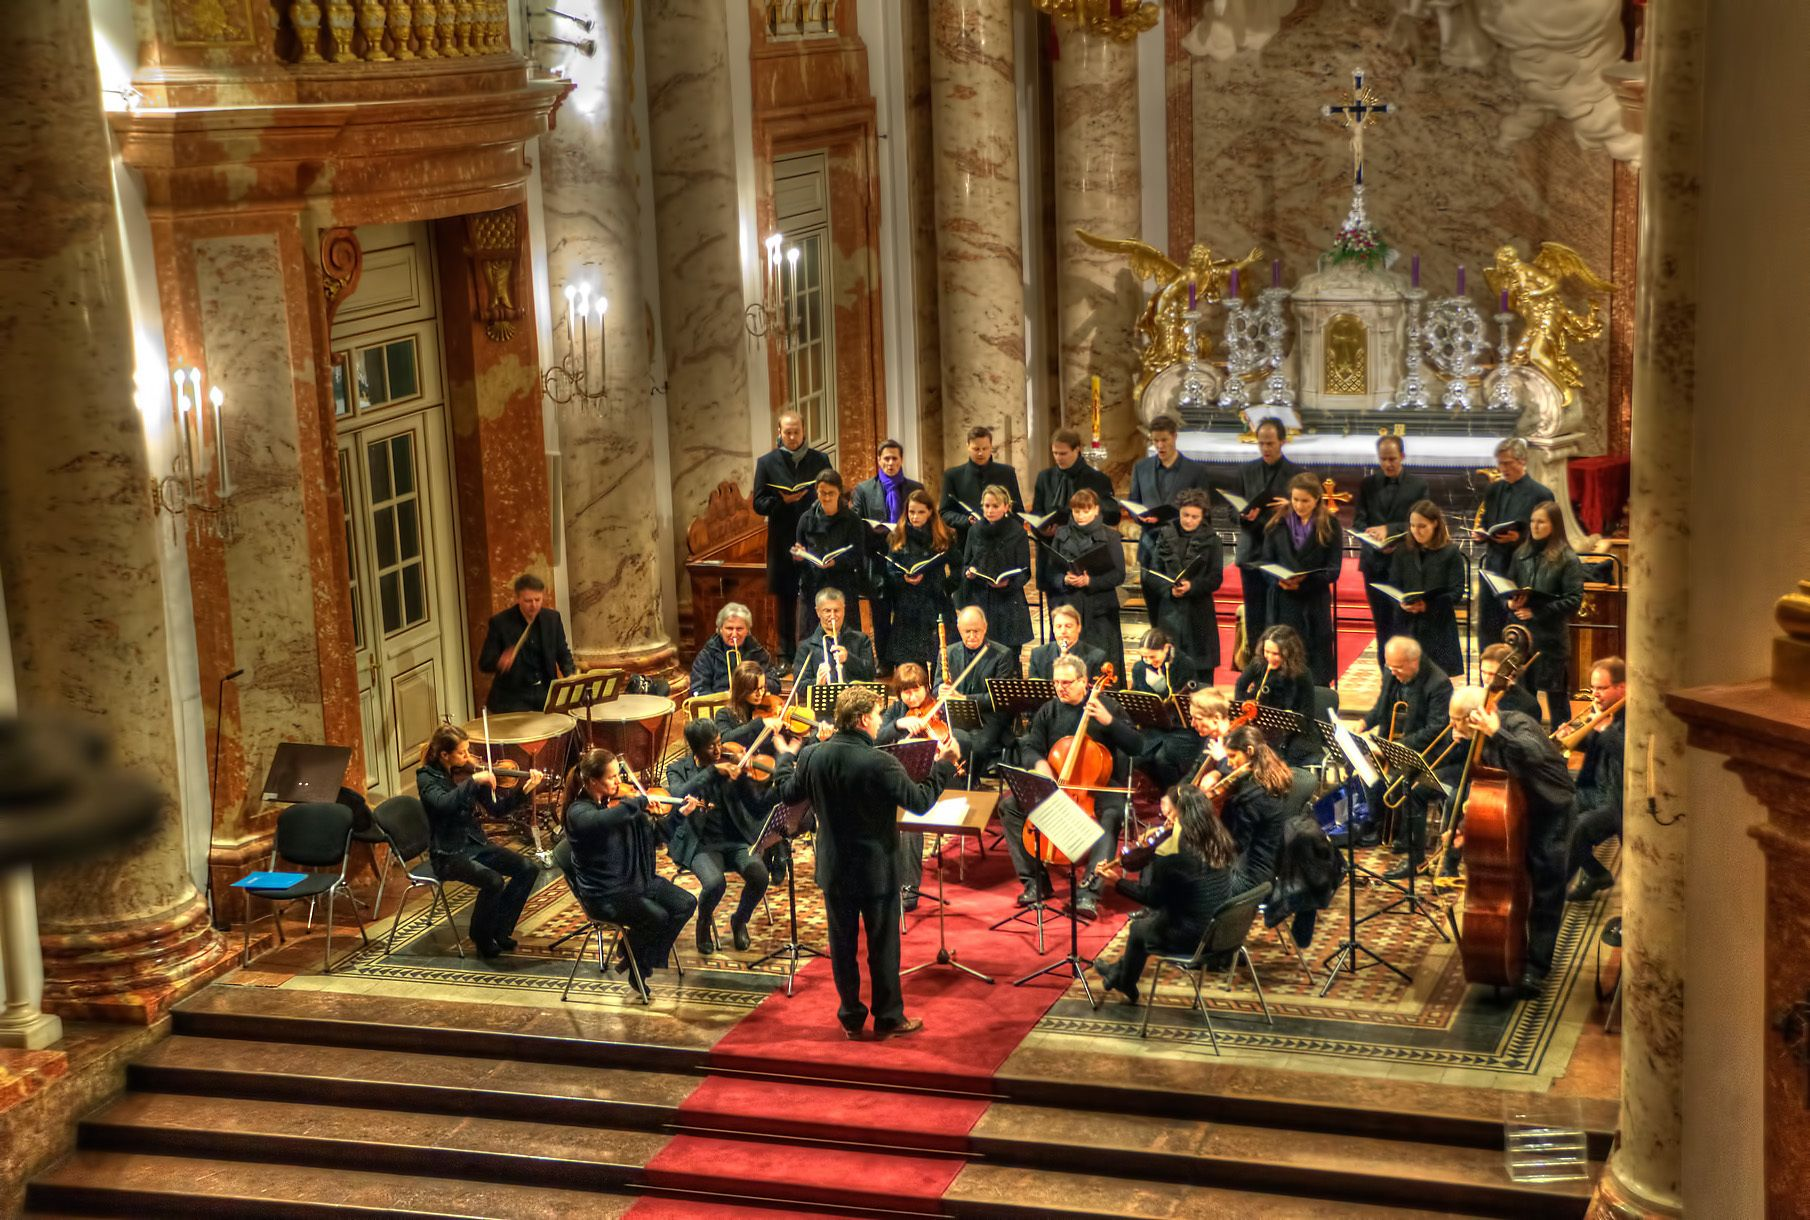 Mozart Requiem Concert at St. Charles's Church